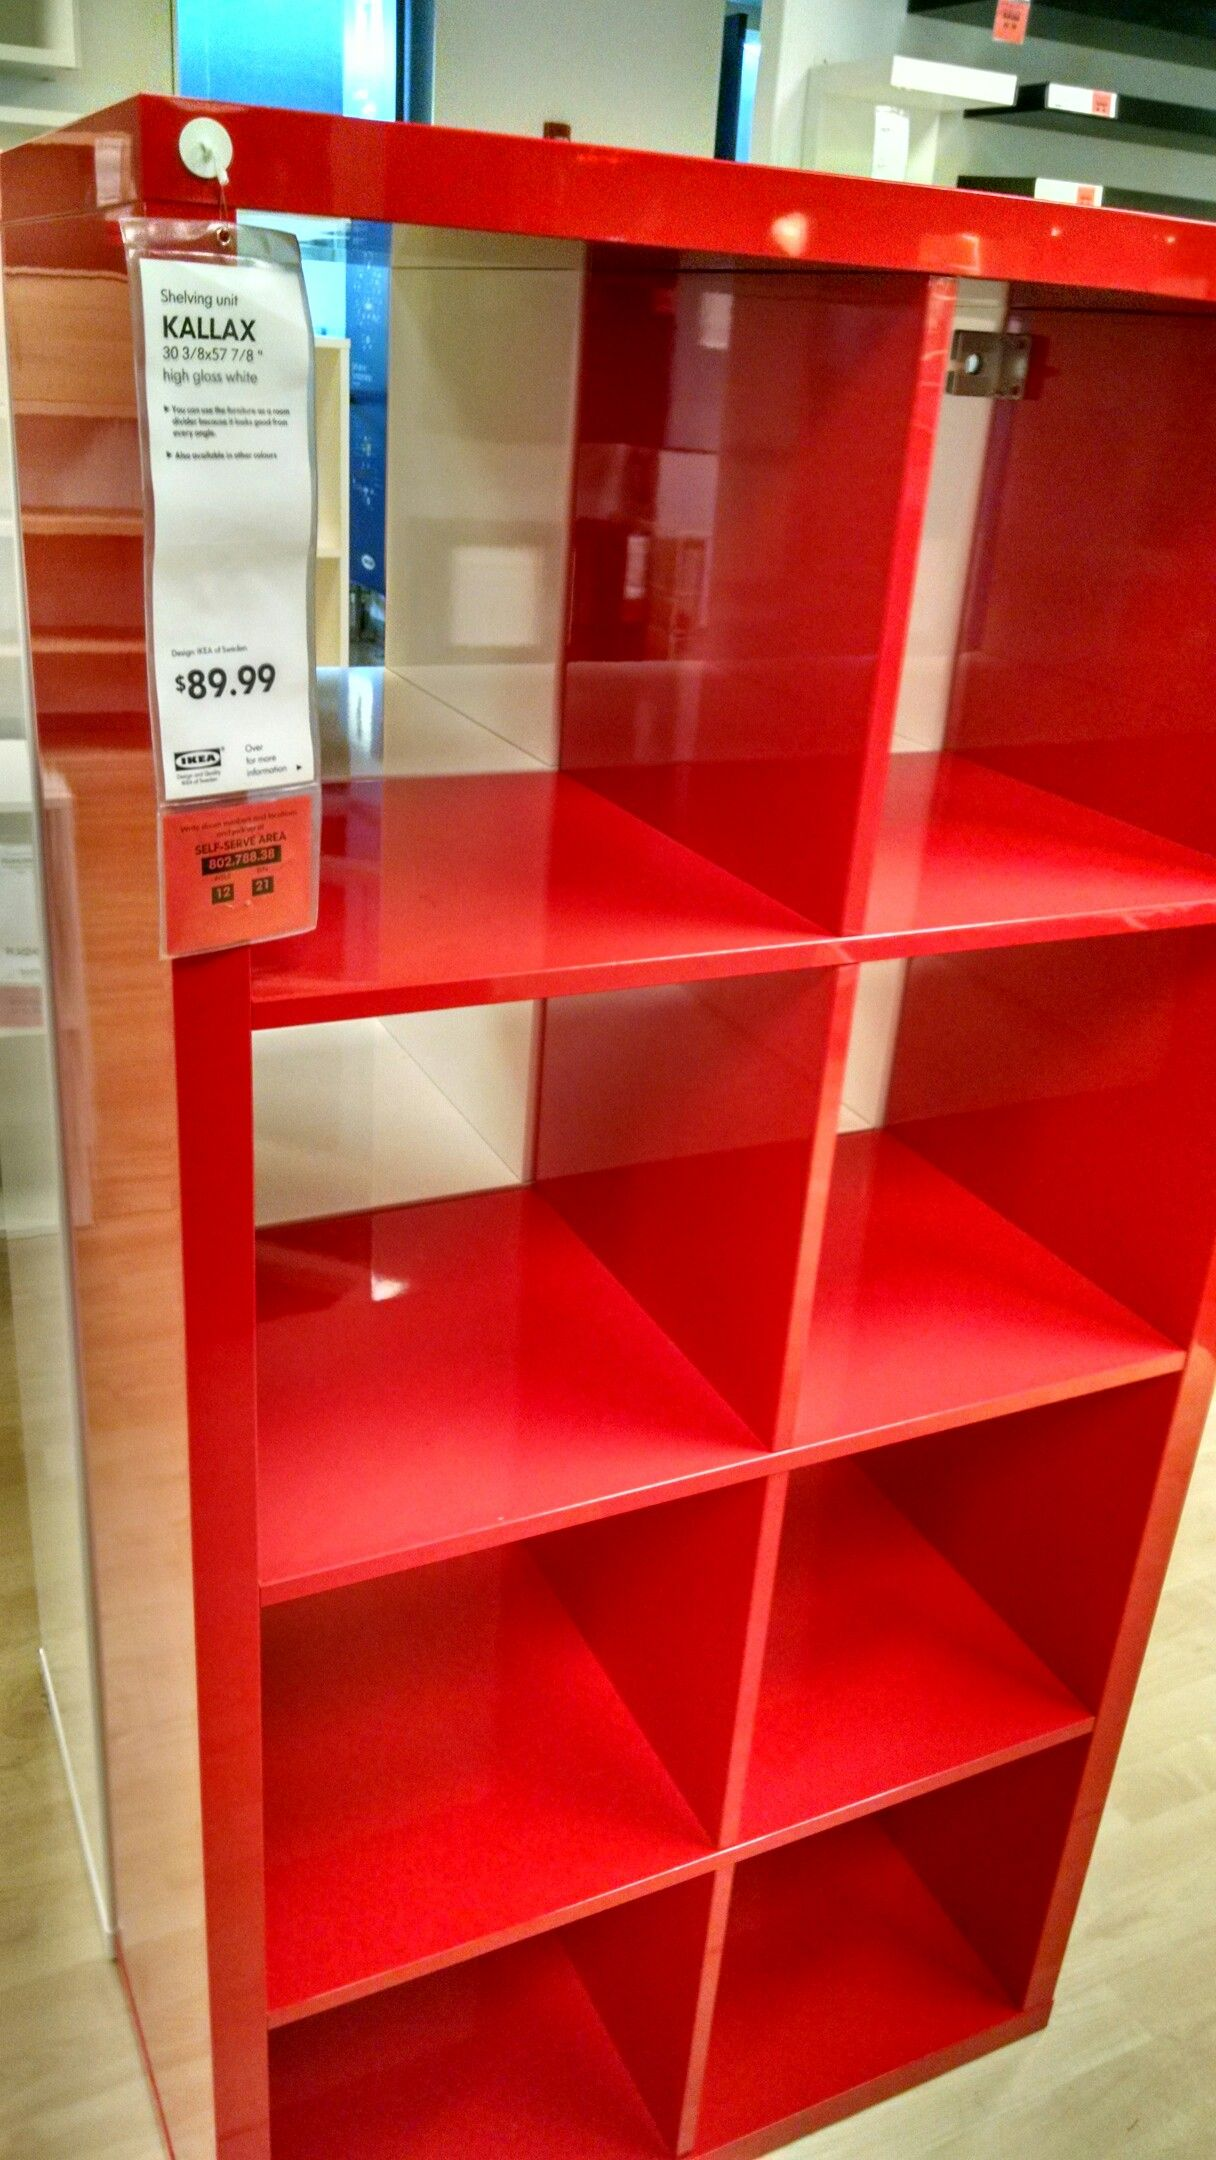 Ikea Kallax Large Red Shelf 89 99 Red Shelves Kallax Ikea Shelves